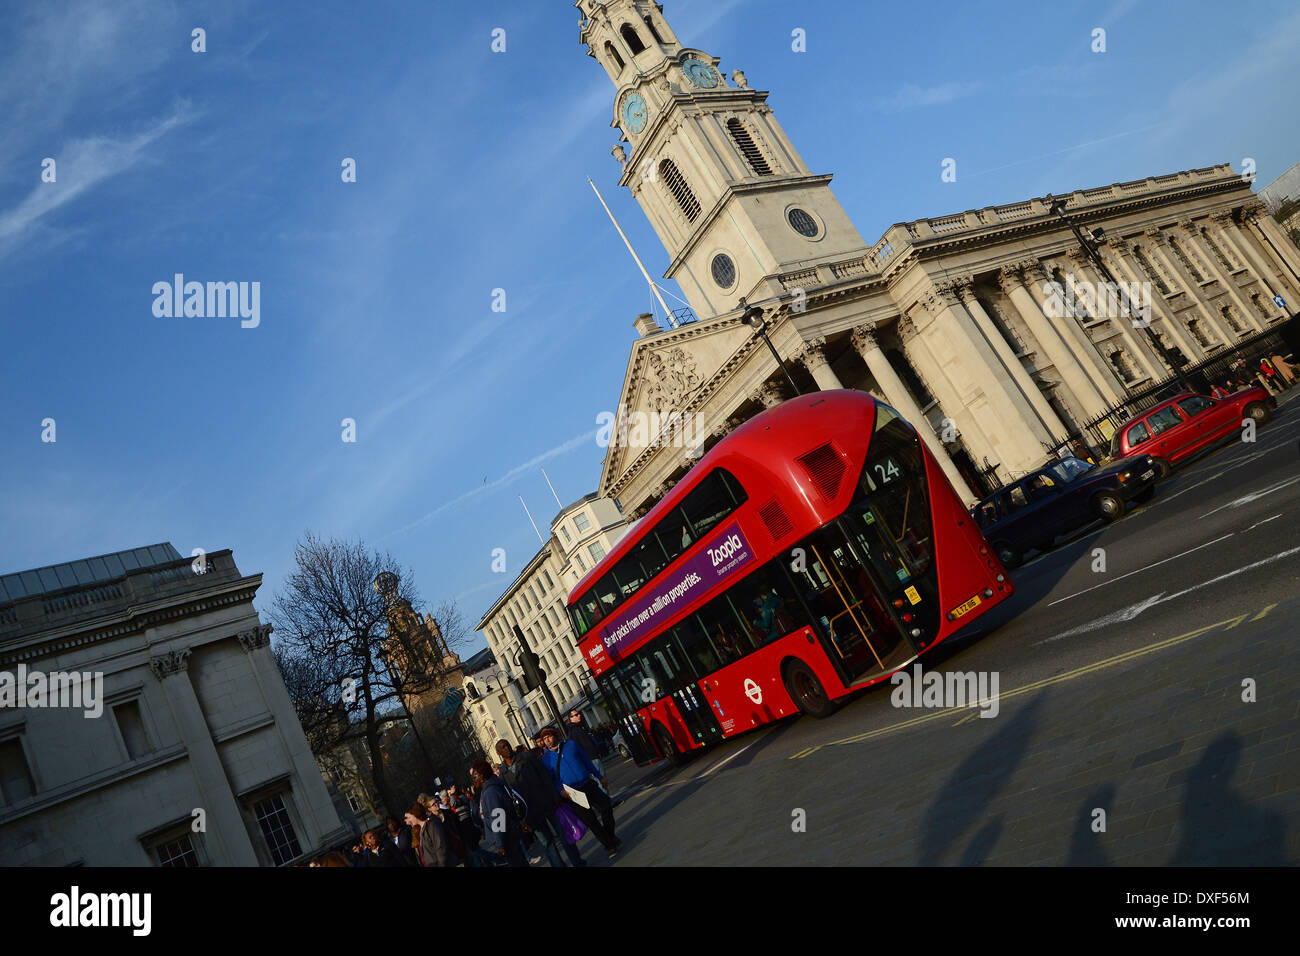 New Bus for London - Stock Image